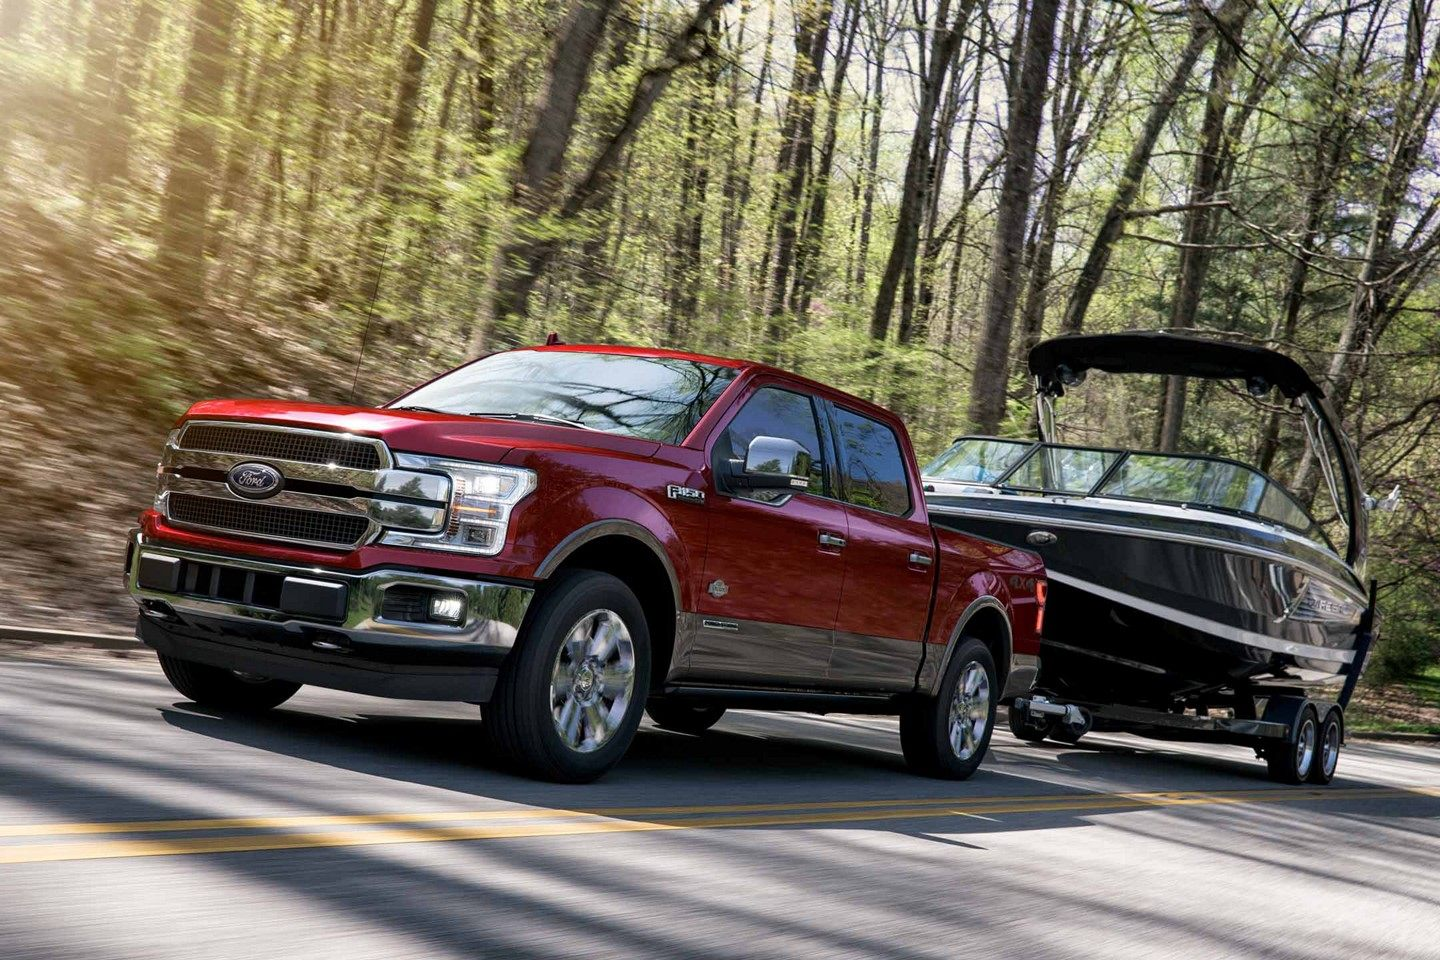 2019 Ford F-150 king ranch in ruby red